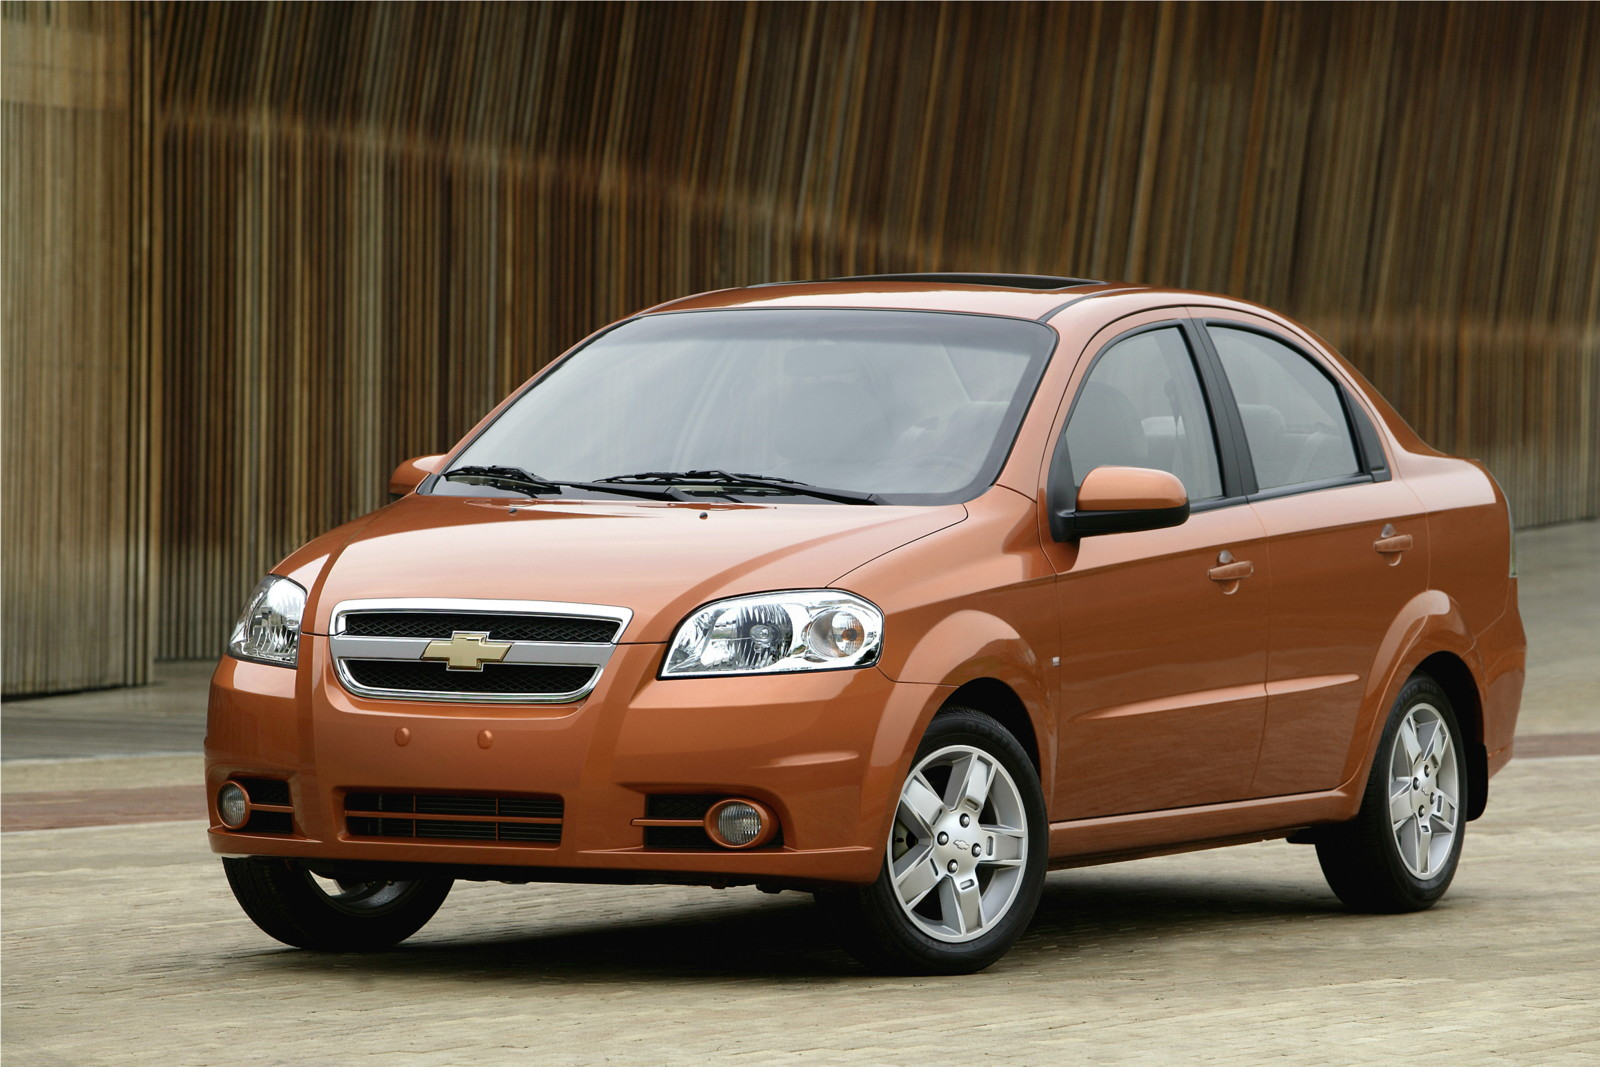 All Chevy chevy aveo 2007 : Chevy Aveo Versus Honda Fit: A First Look